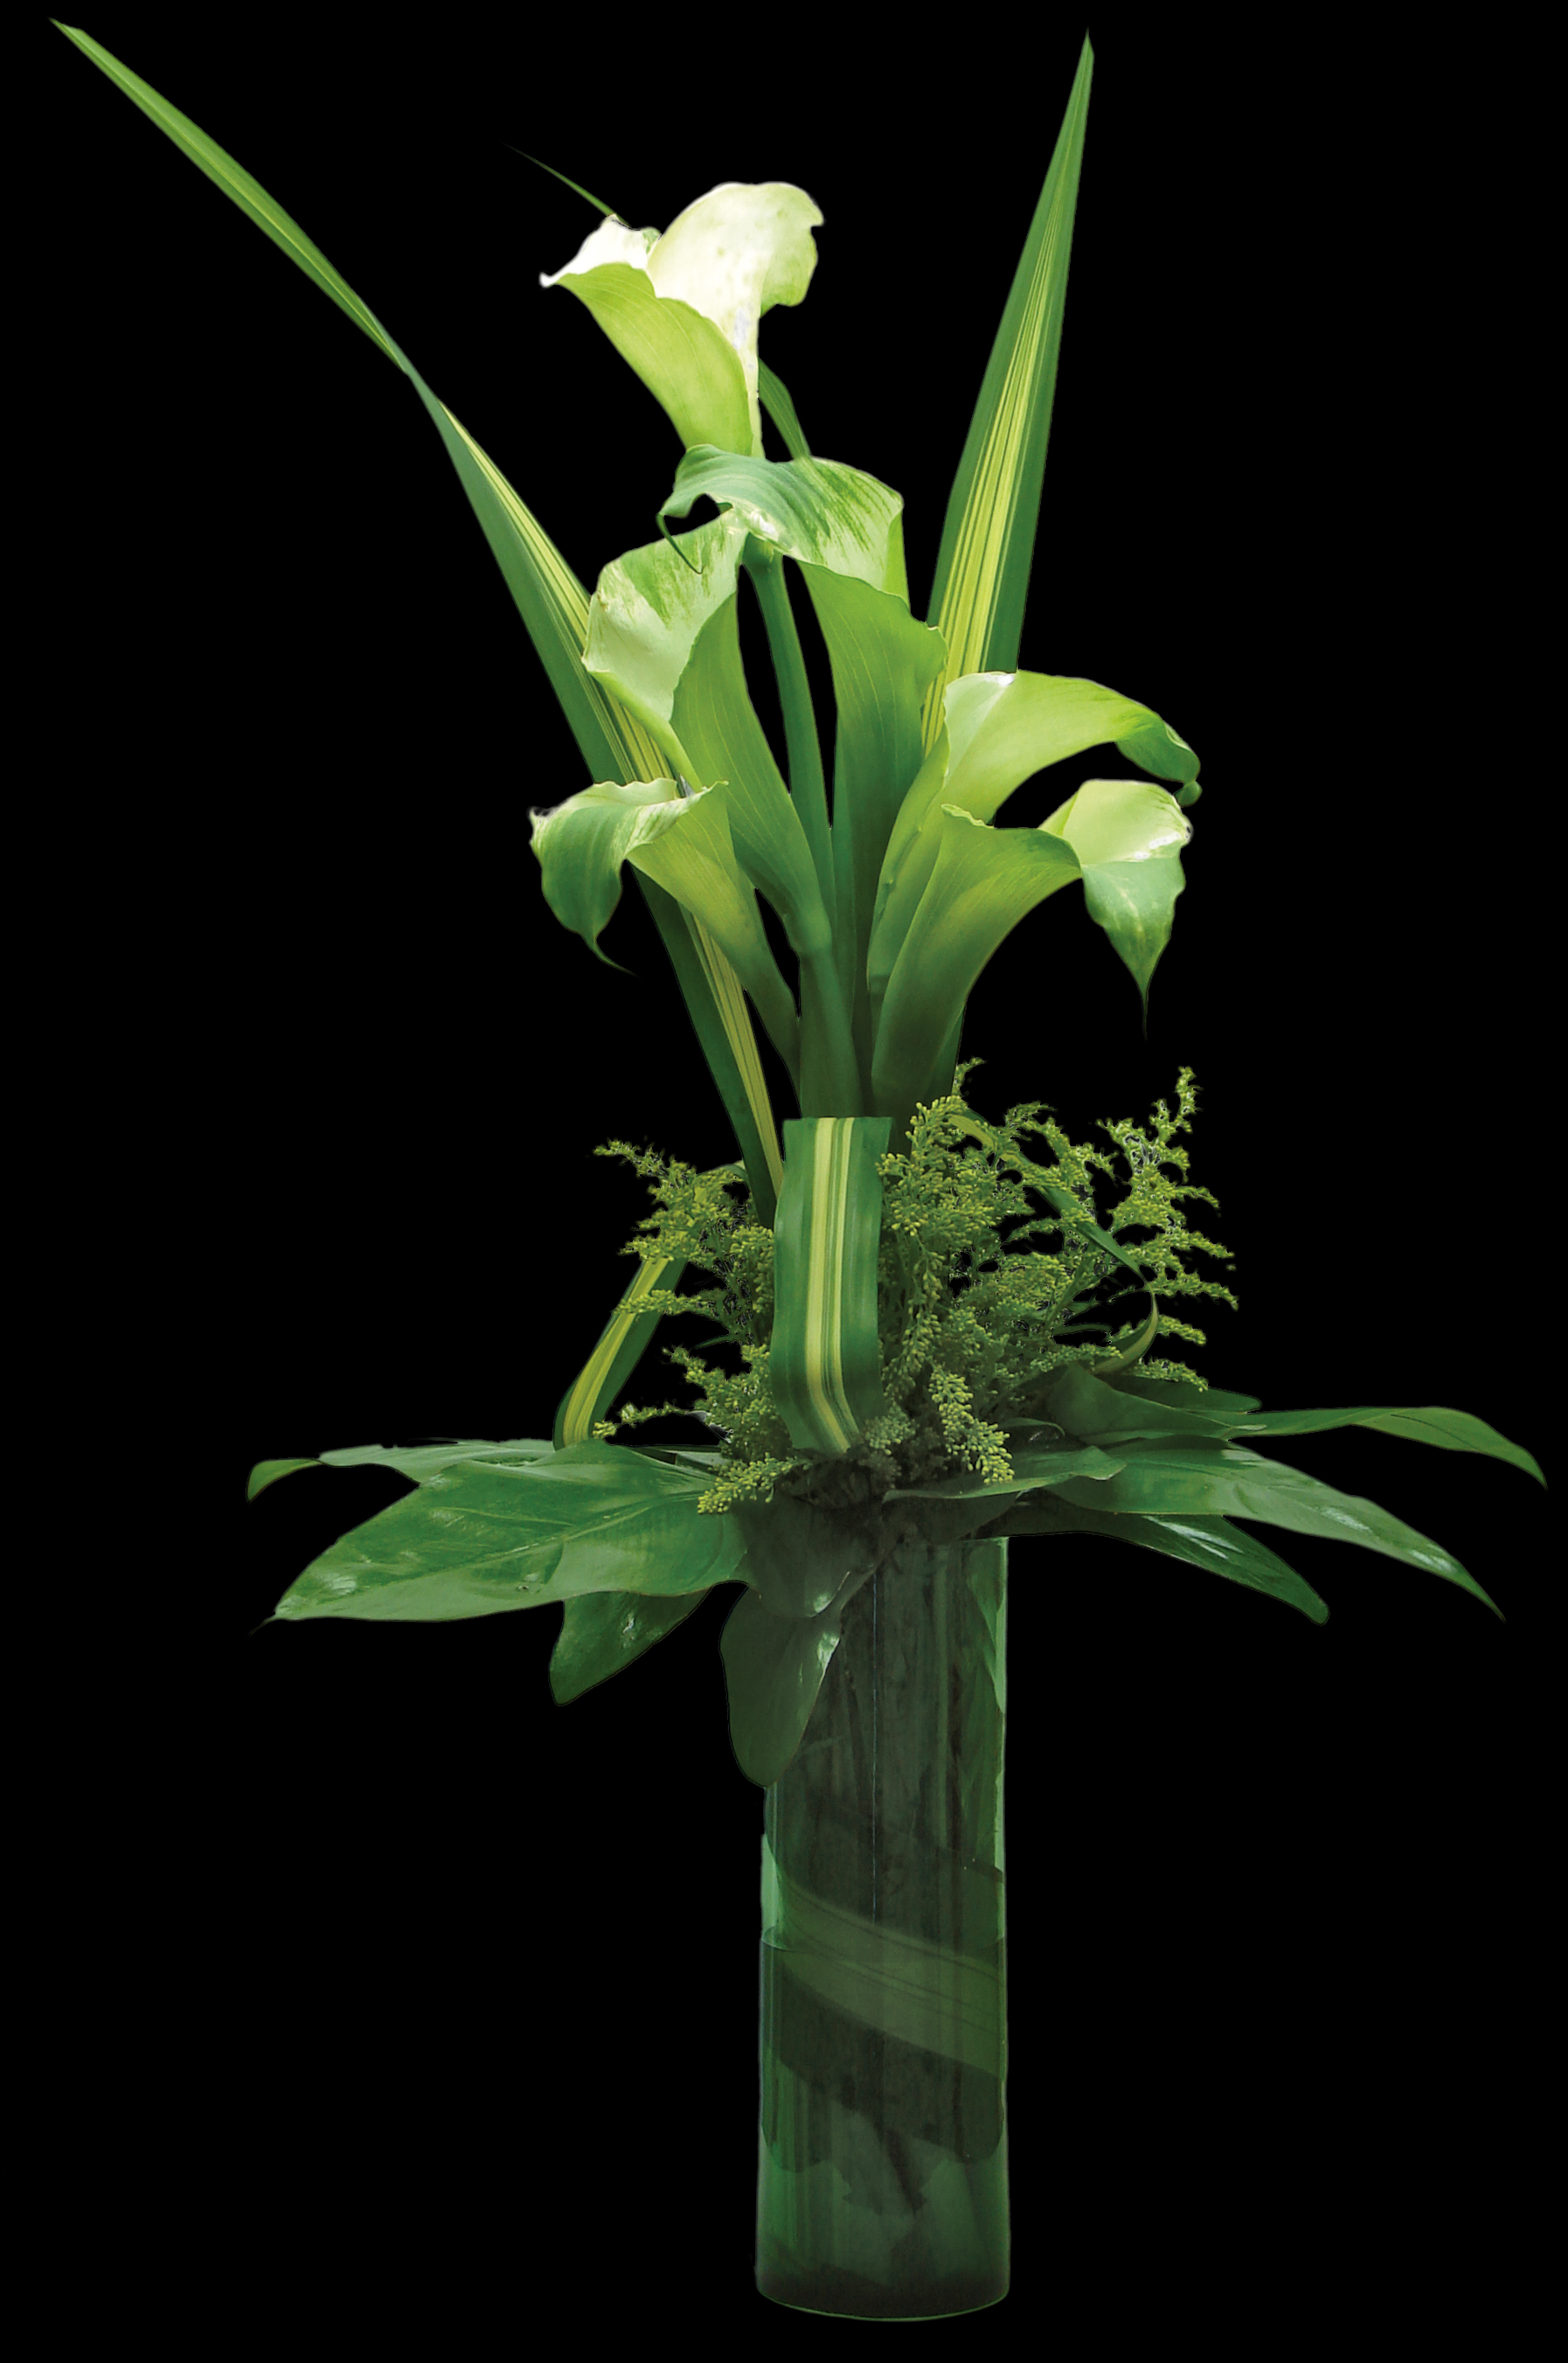 How to make a green flower arrangement